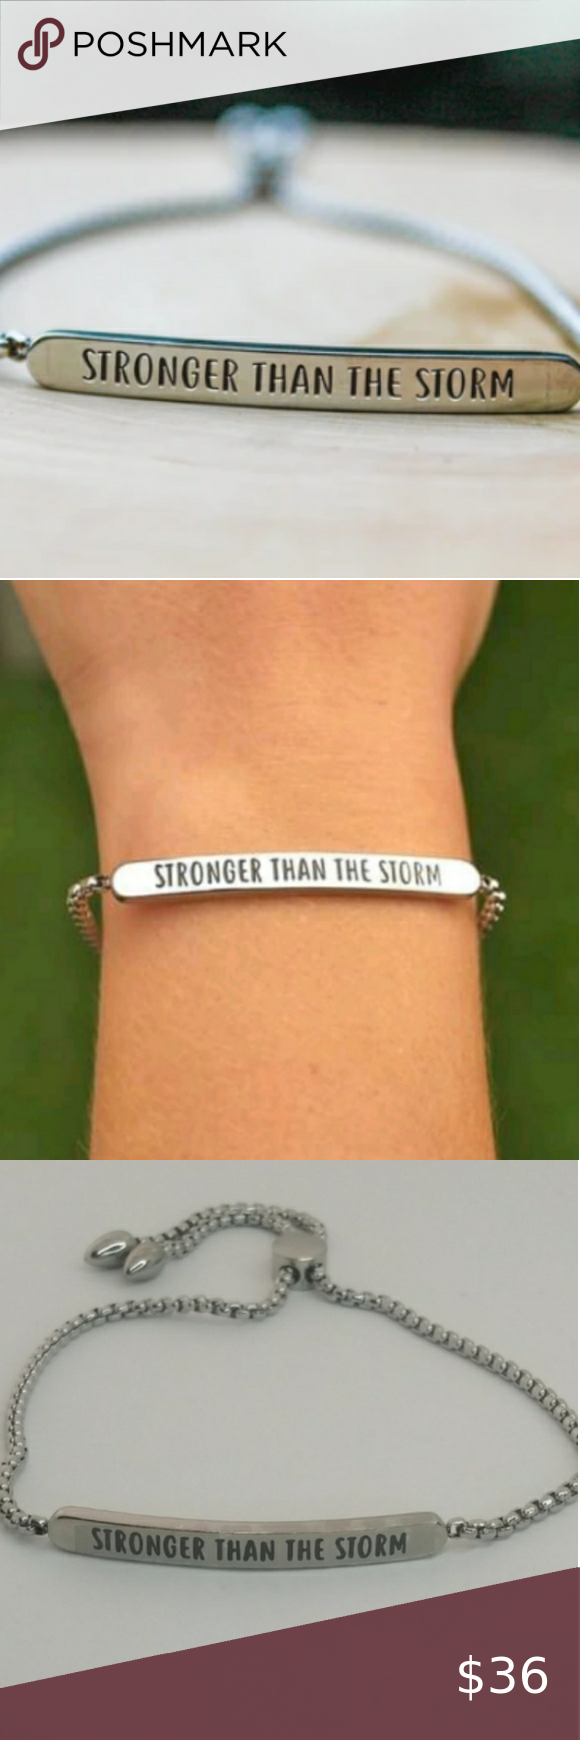 22+ Stronger than the storm jewelry ideas in 2021